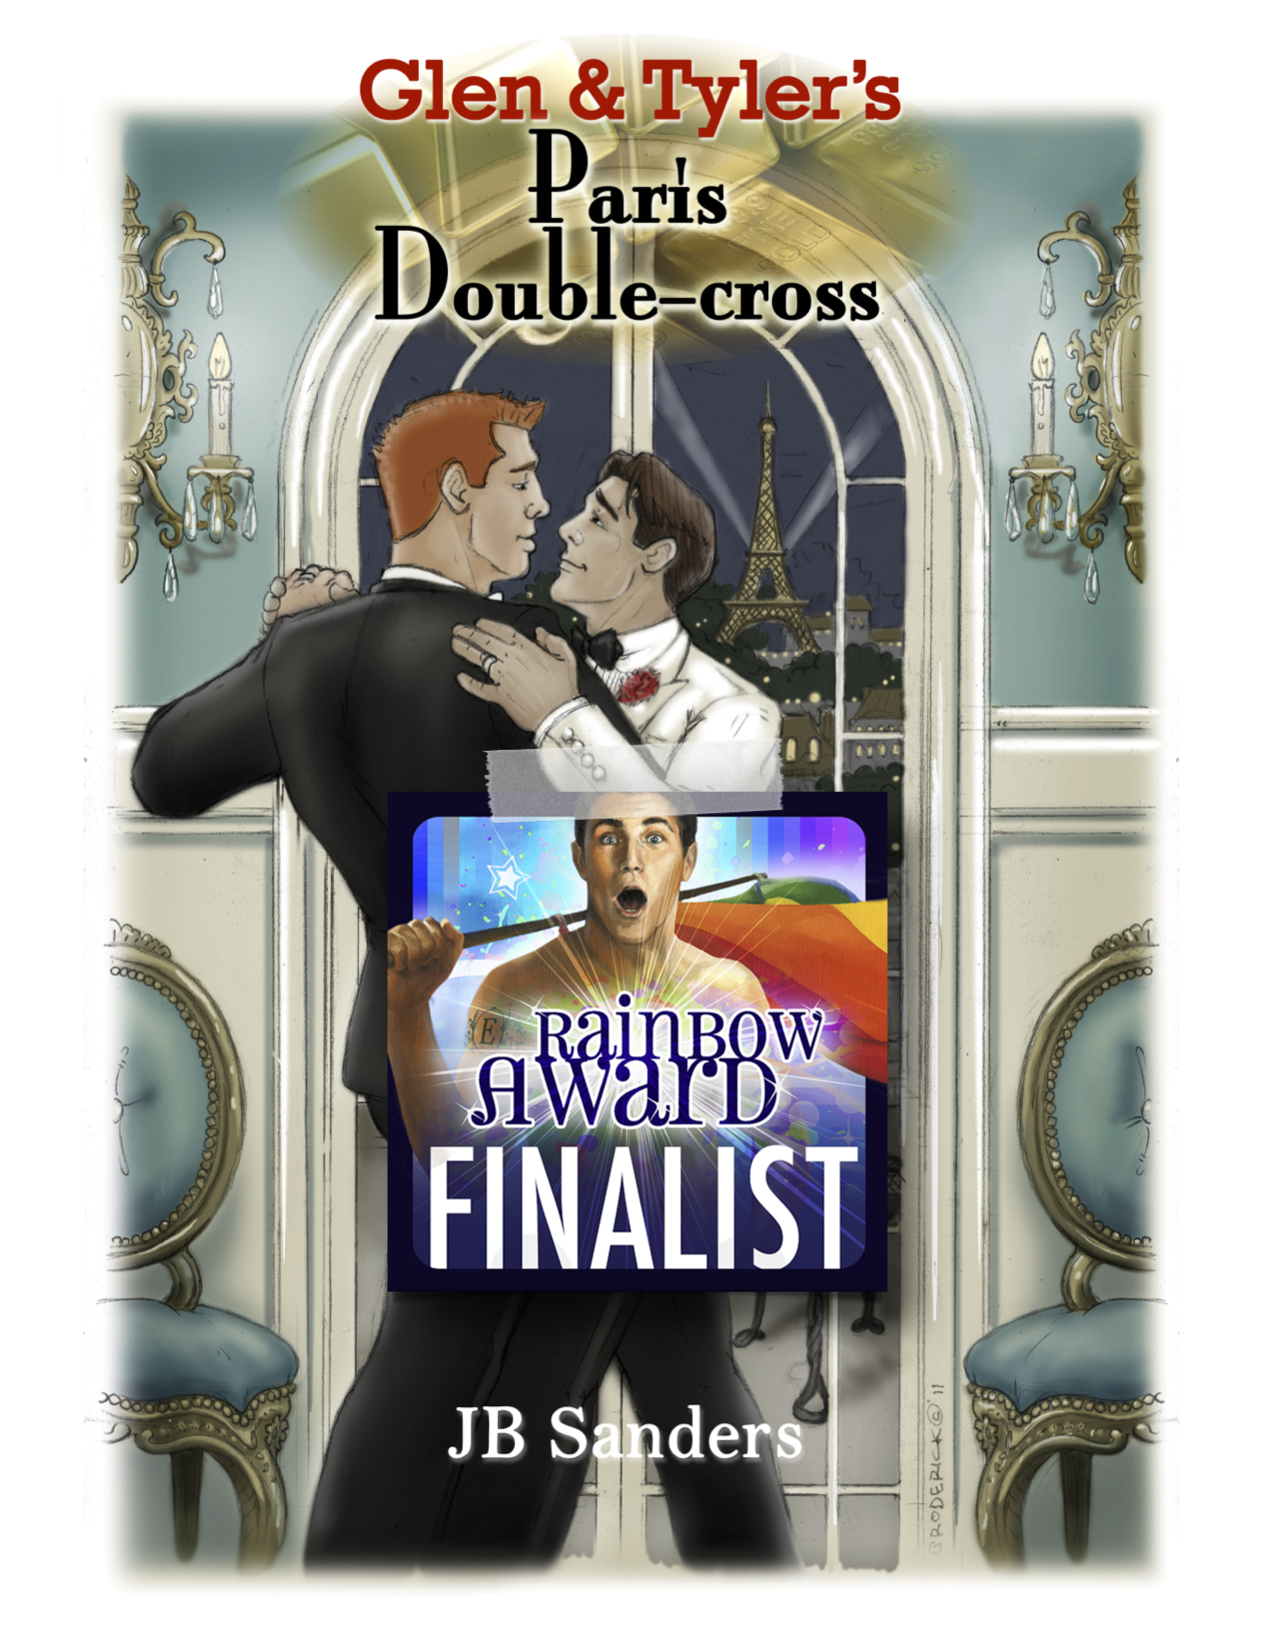 The third book in the series, Glen & Tyler's Paris Double-cross, was a Finalist in the Rainbow Awards for best Gay Mystery/Thriller.